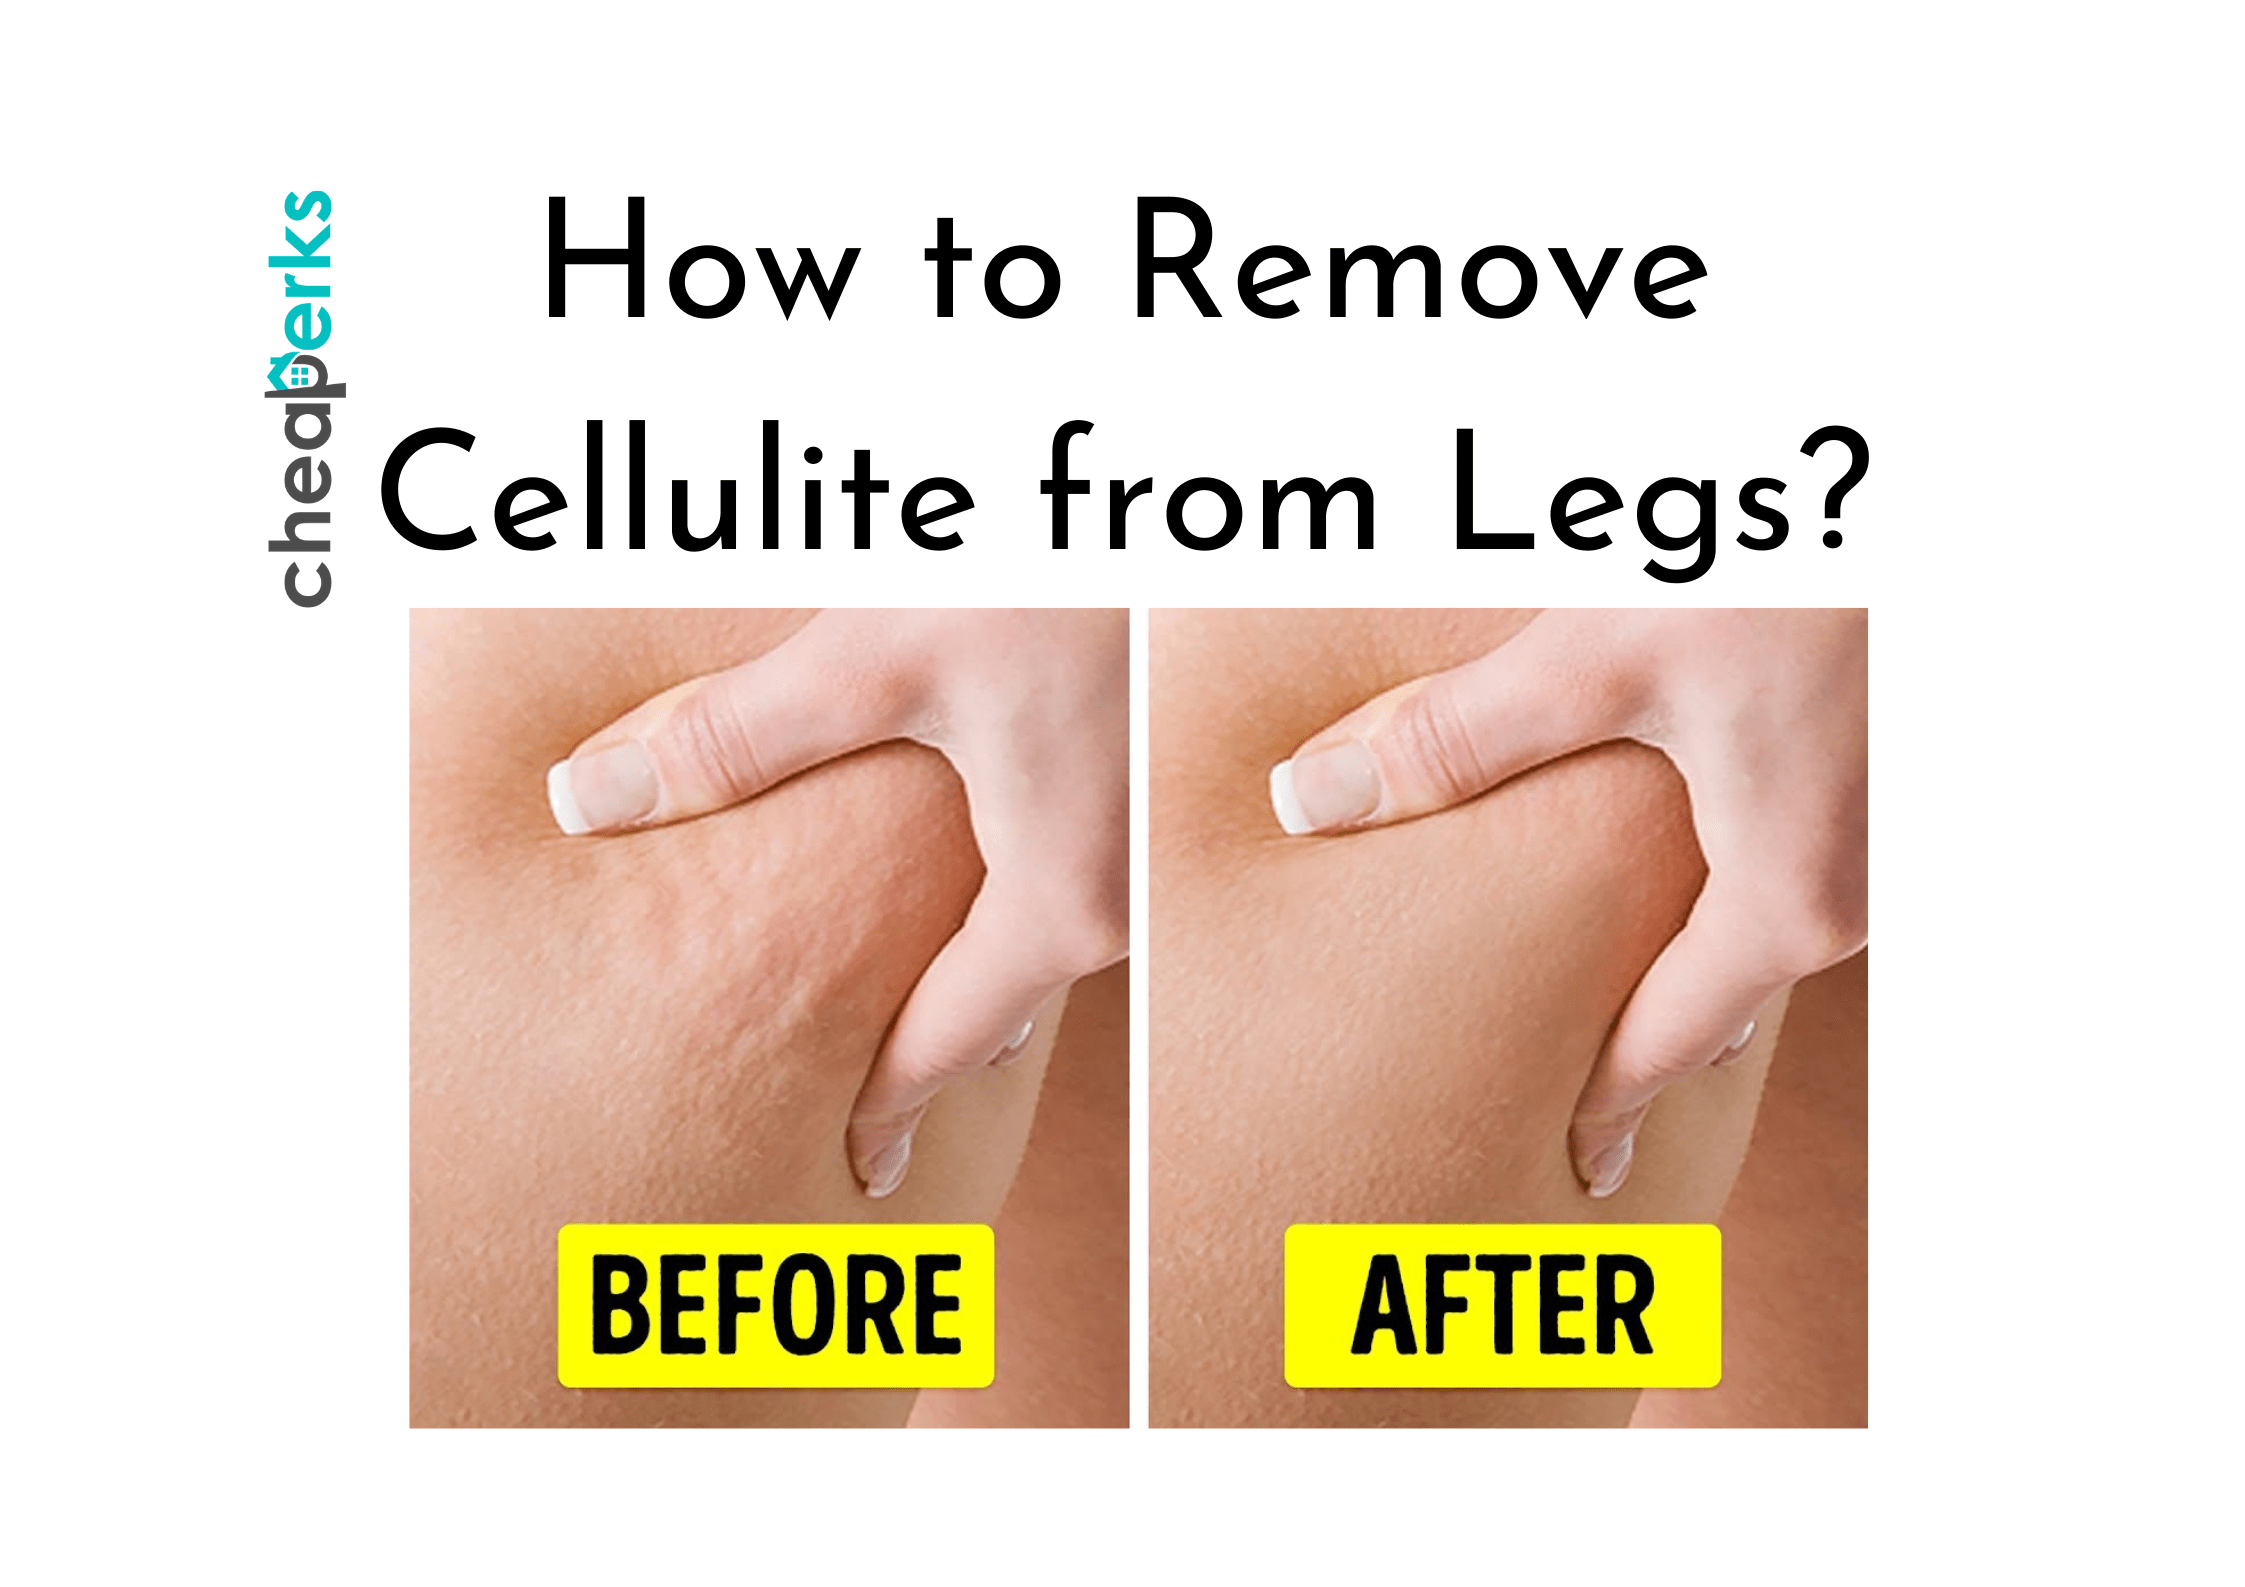 How to Remove Cellulite from Legs?